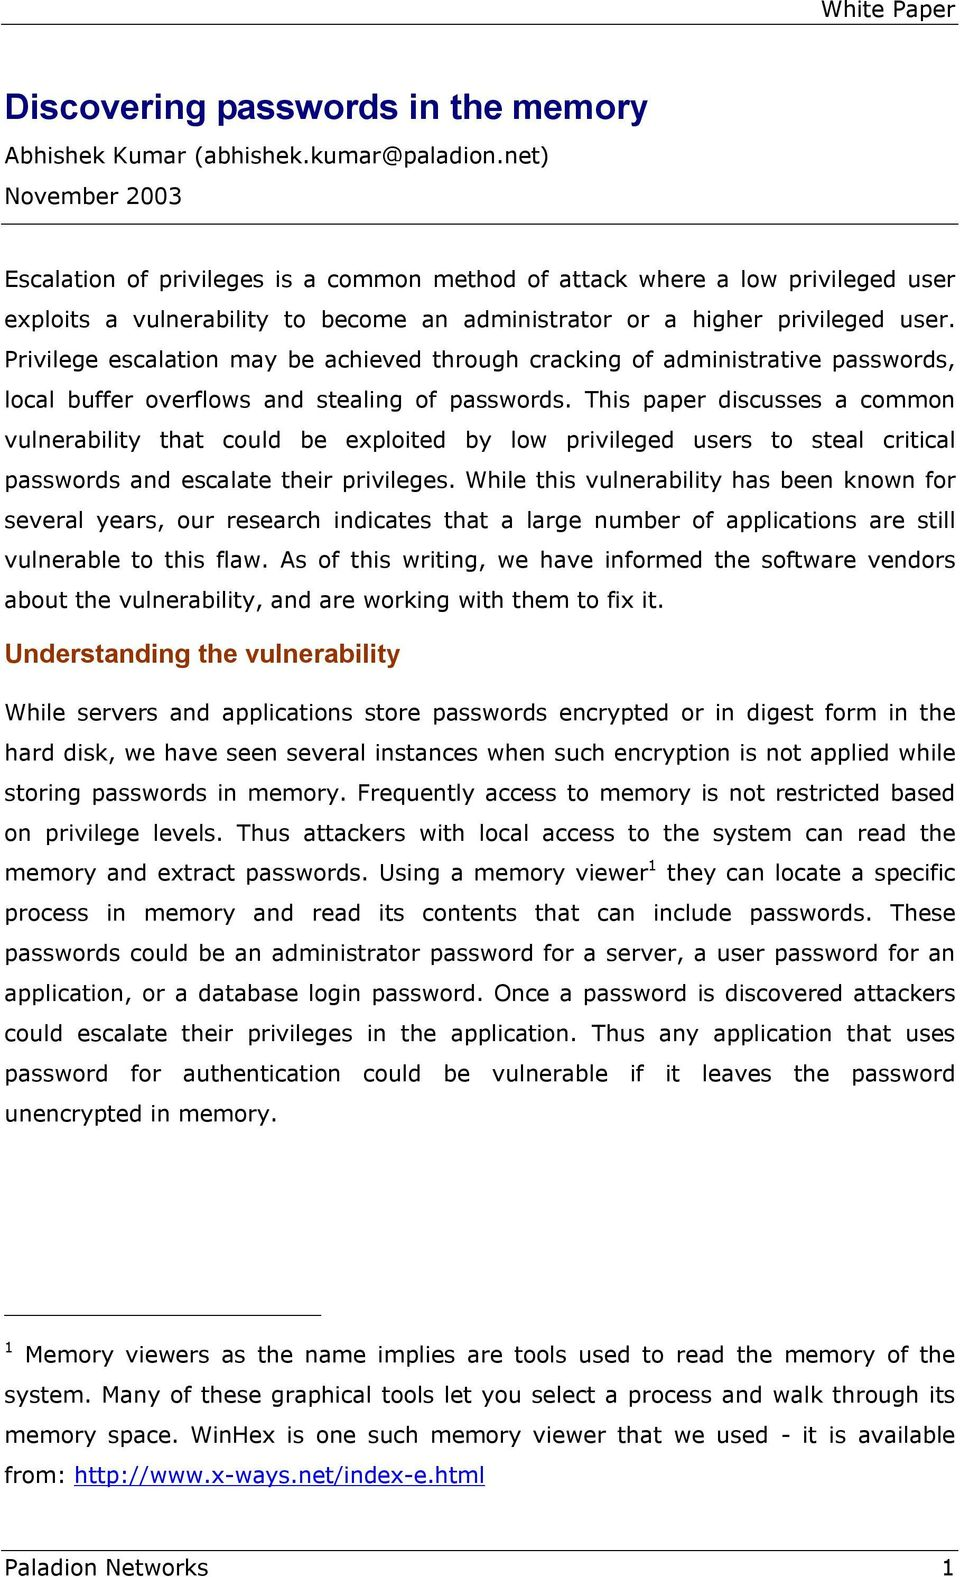 Privilege escalation may be achieved through cracking of administrative passwords, local buffer overflows and stealing of passwords.